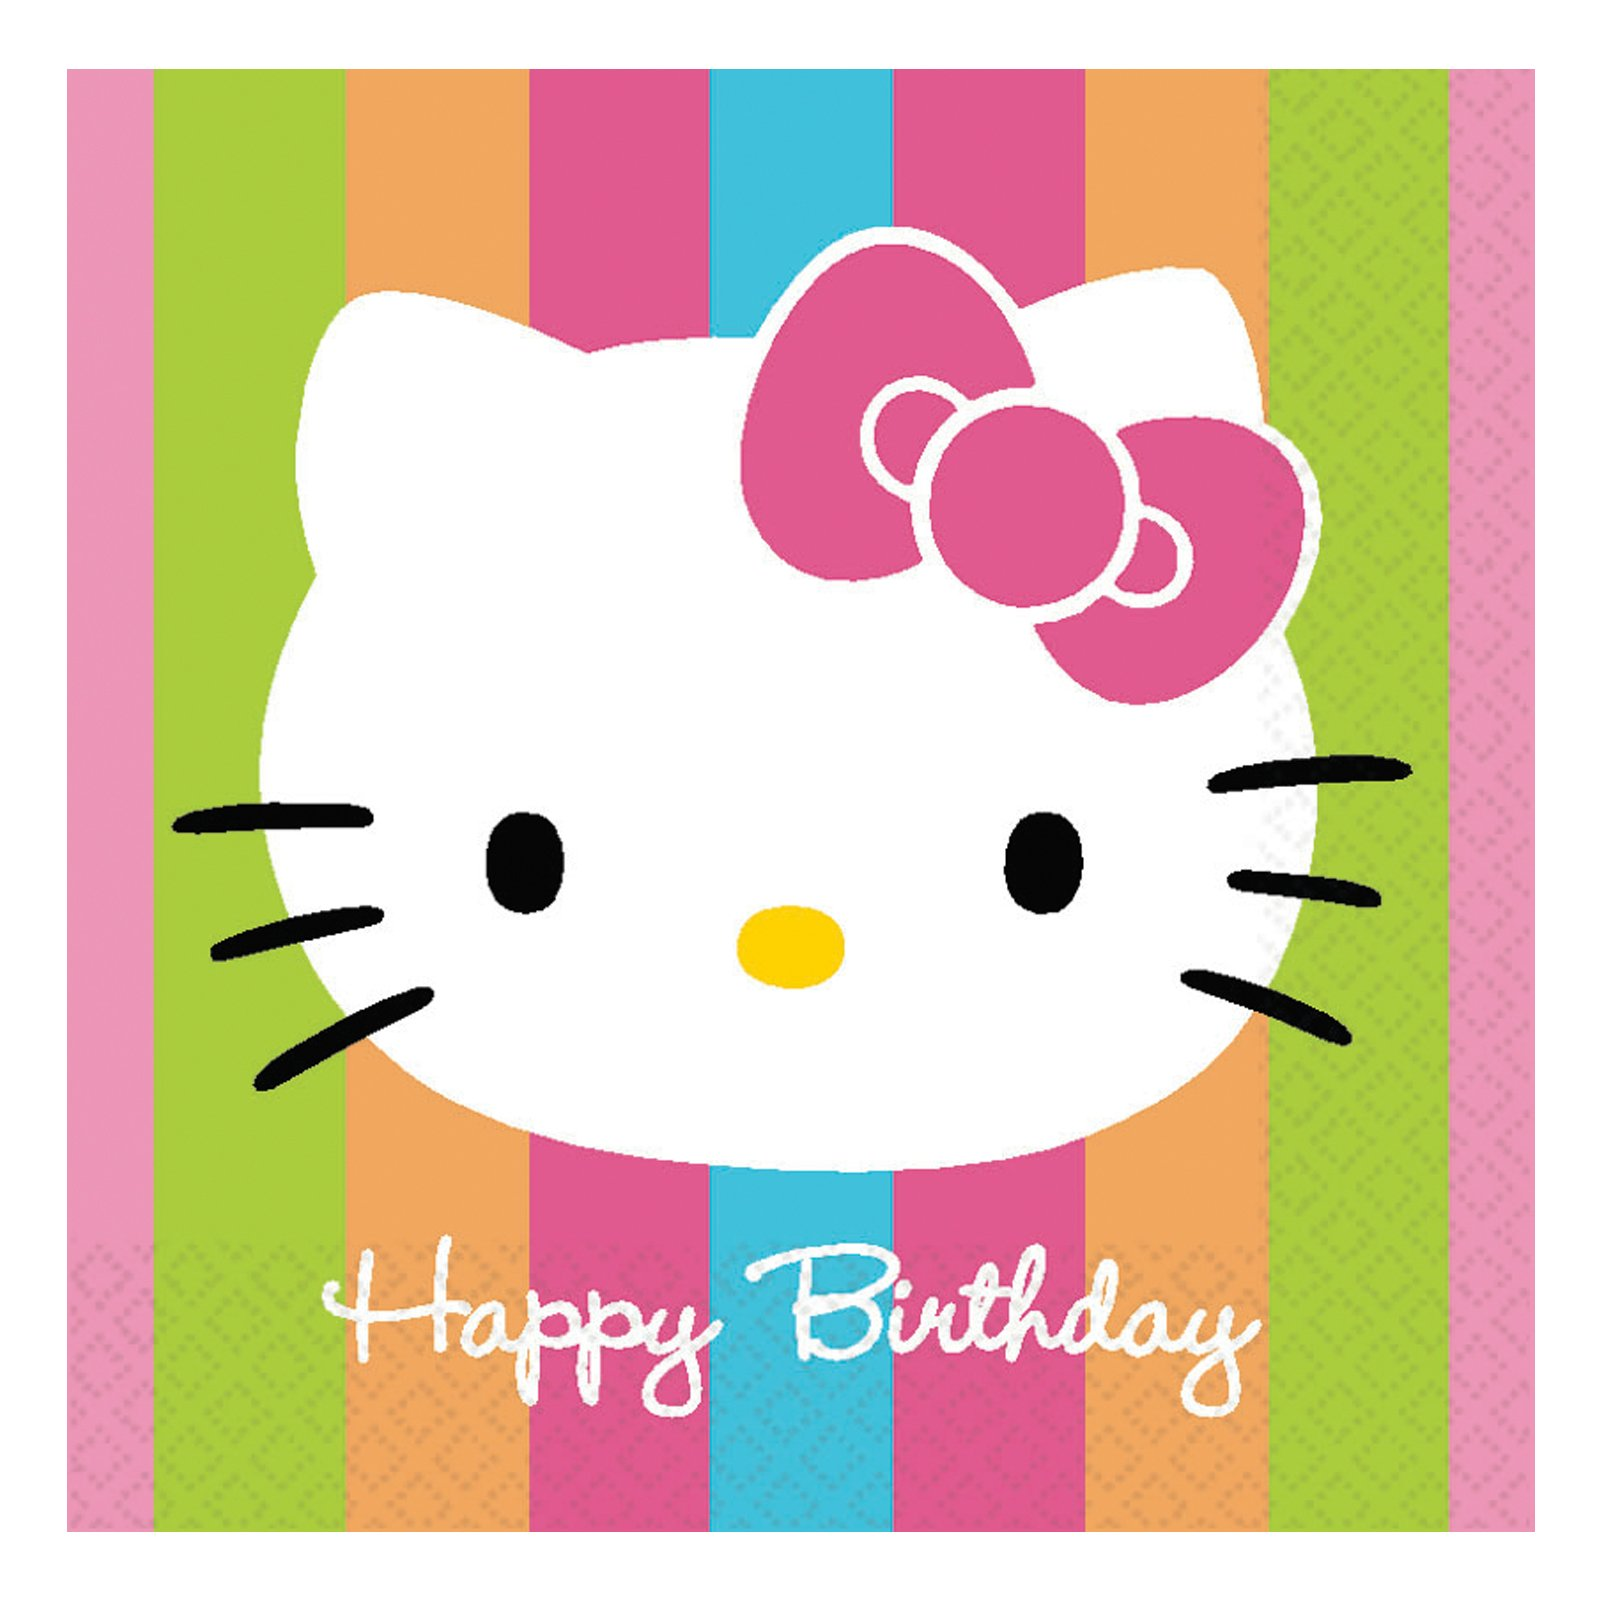 Hello Kitty Birthday Pictures. 1600 x 1600.Free Hello Kitty Valentine's Day Cards